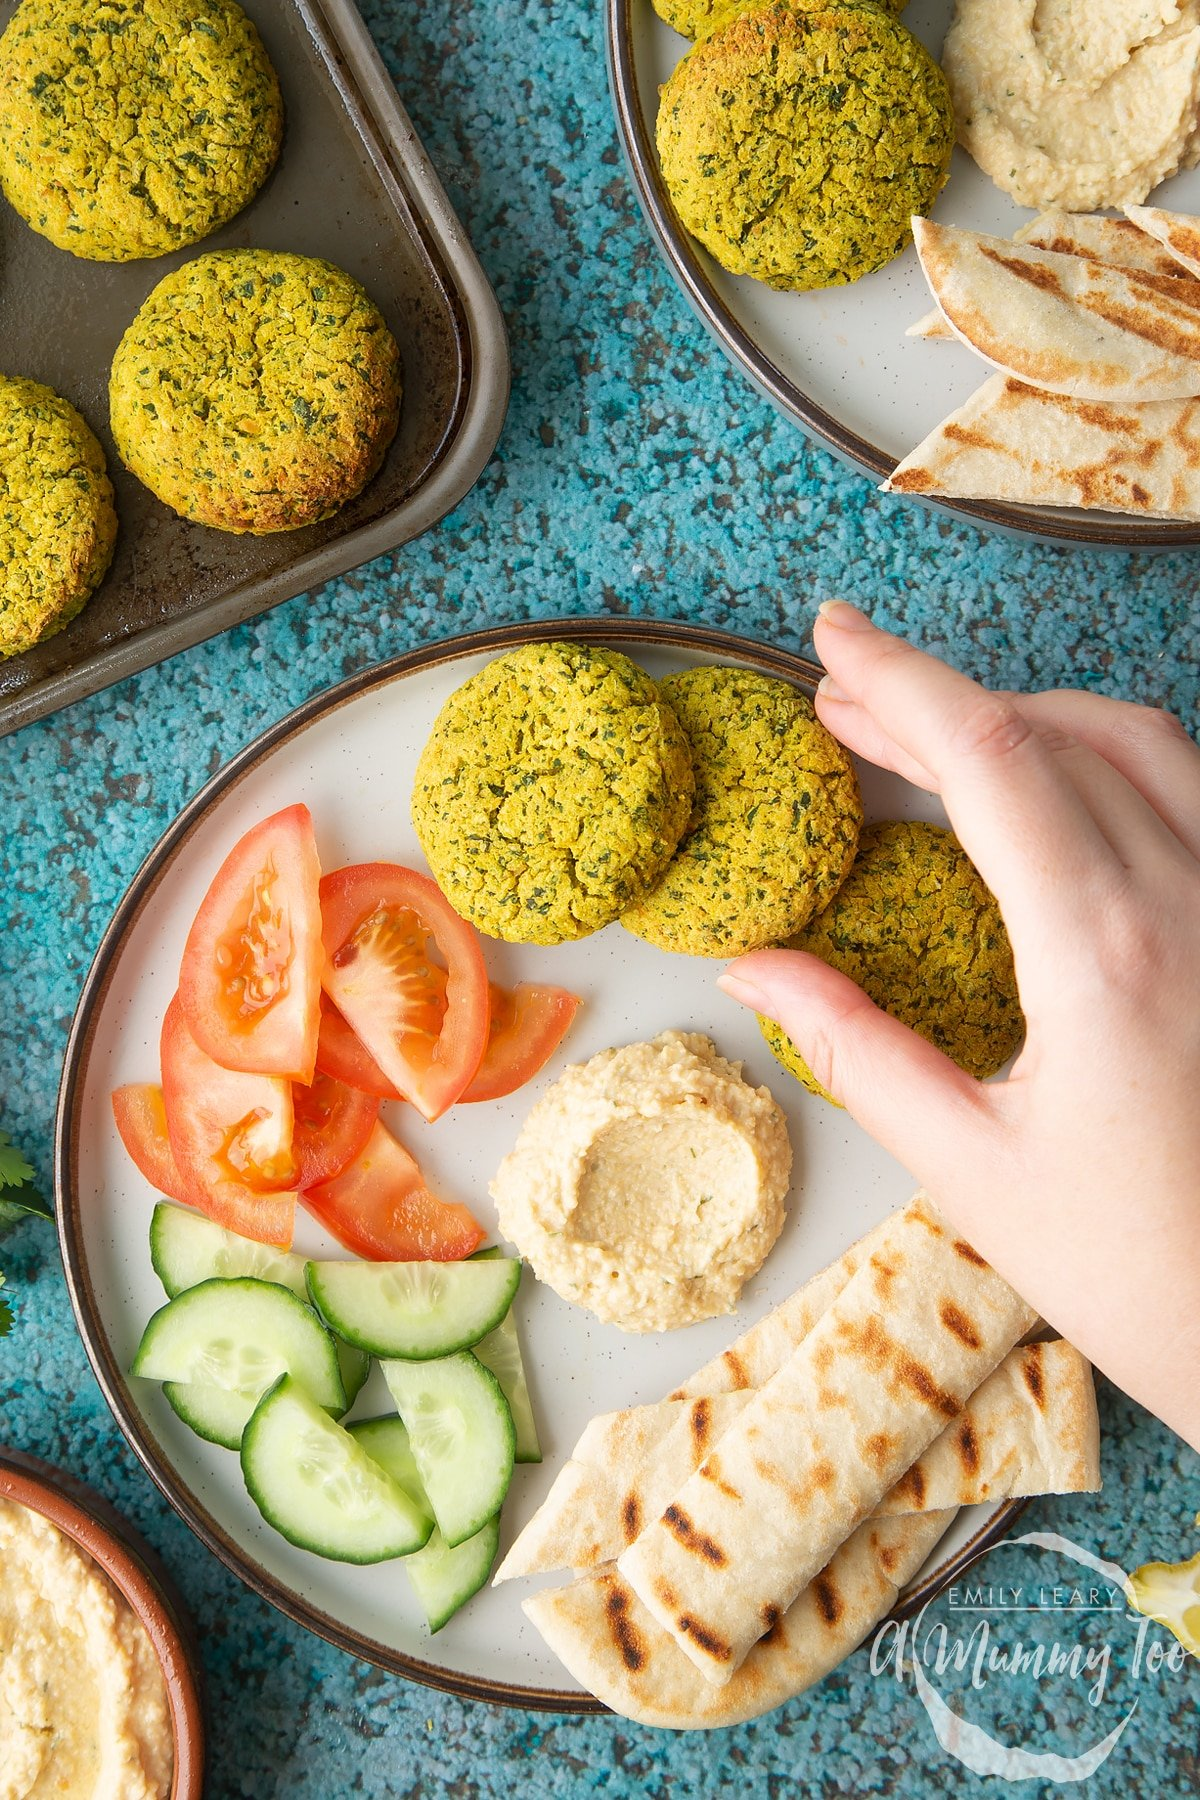 Gluten-free falafel on a plate with tomatoes, cucumber, hummus and  griddled flatbread. A hand reaches for one.